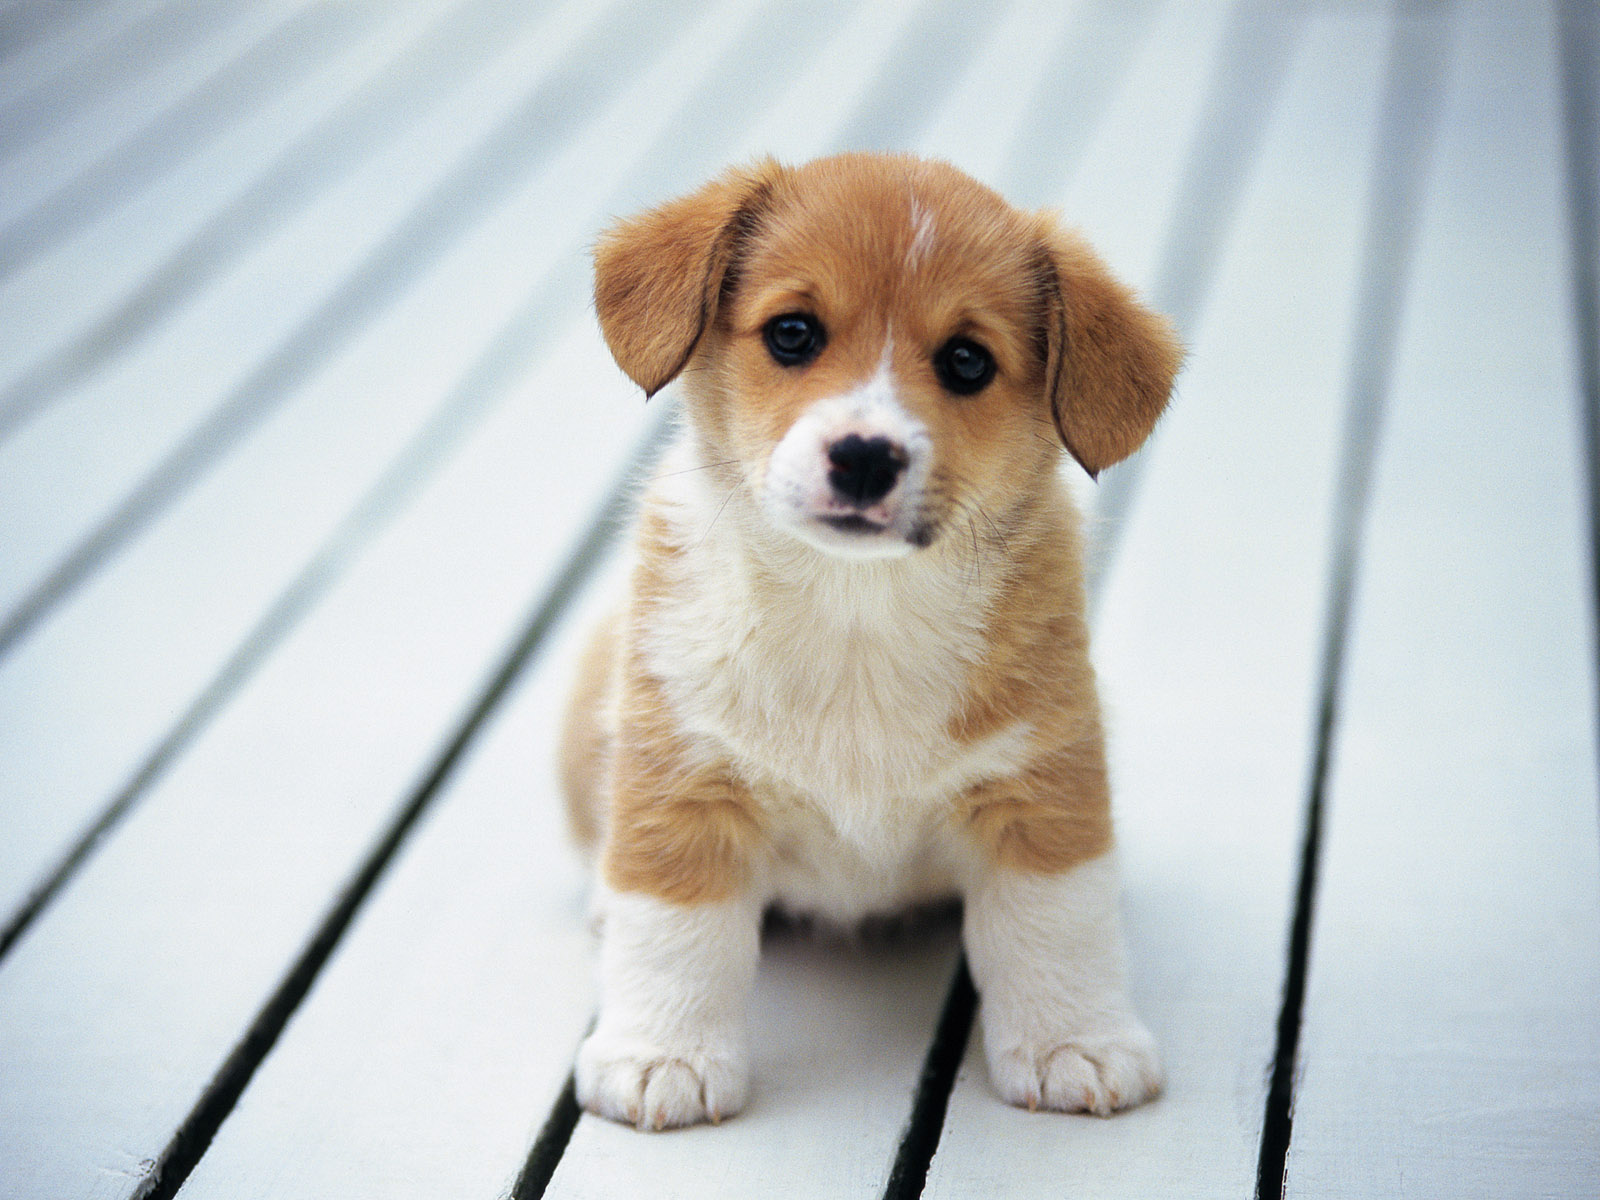 Innocent Puppies Wallpapers Free